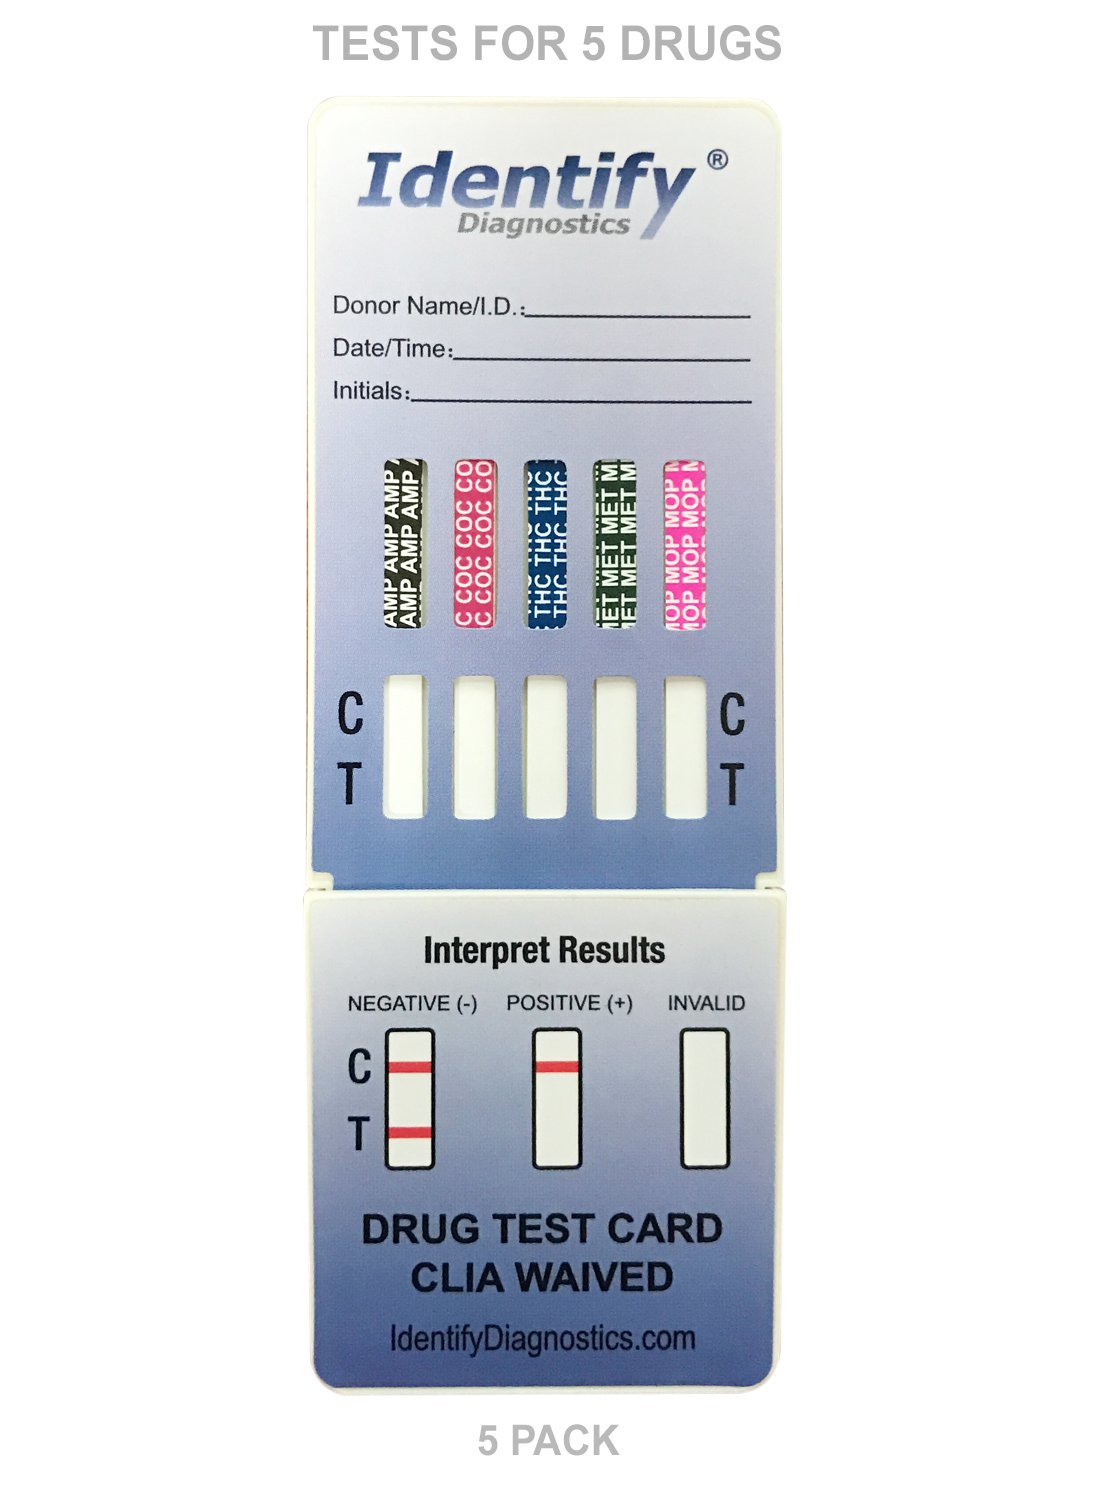 5 Pack Identify Diagnostics 5 Panel Drug Test Dip with Lowest Opiates Cutoff - Testing Instantly for 5 Different Drugs: THC, COC, MOP, MET, AMP #ID-CP5-DIP